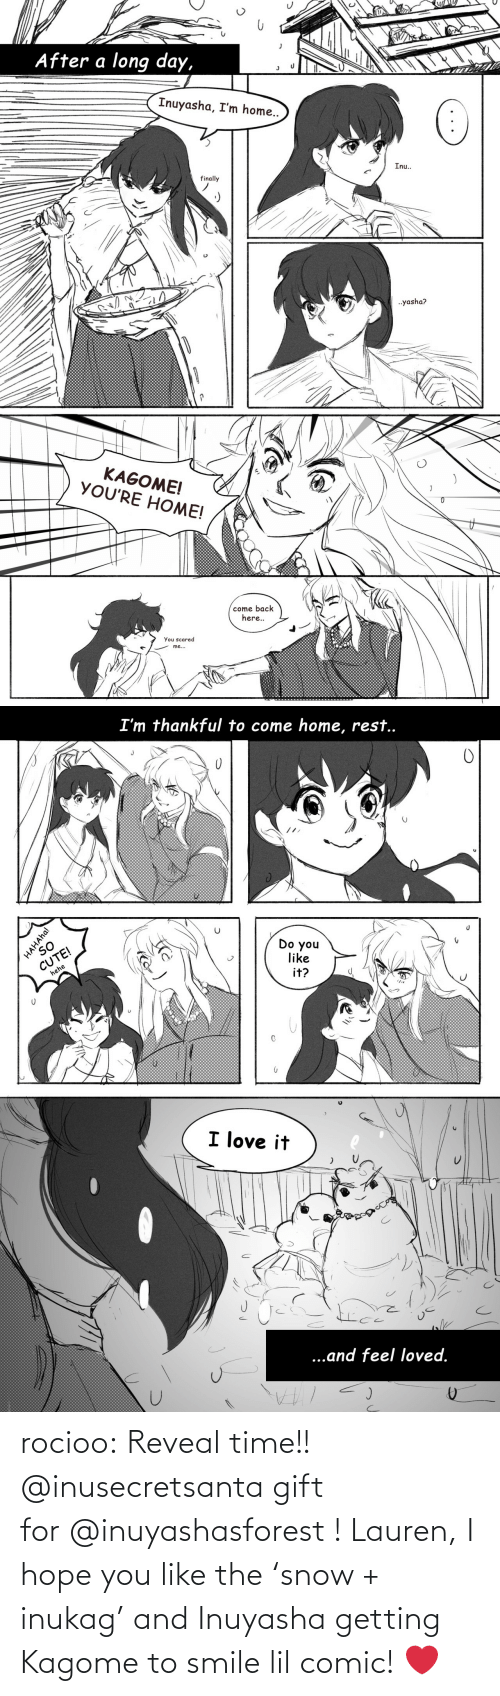 Time: rocioo: Reveal time!! @inusecretsanta gift for @inuyashasforest ! Lauren, I hope you like the 'snow + inukag' and Inuyasha getting Kagome to smile lil comic! ❤